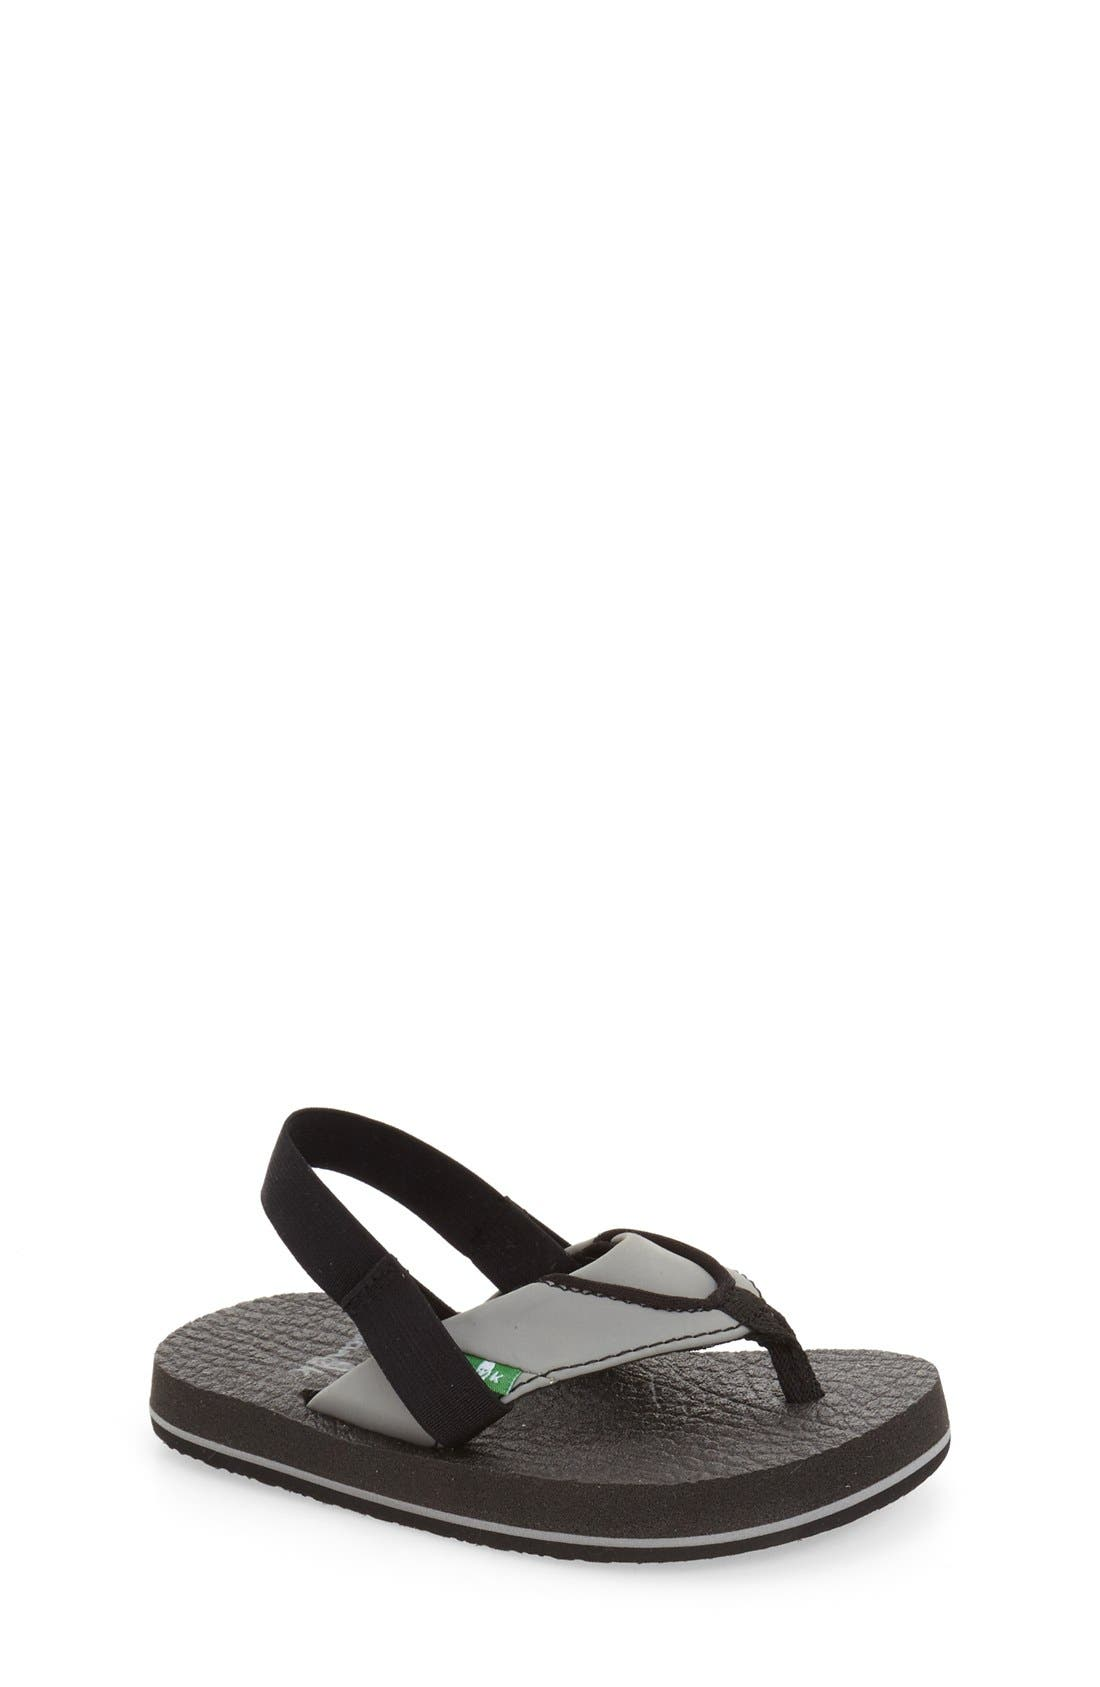 Main Image - Sanuk 'Root Beer' Sandal (Toddler, Little Kid & Big Kid)